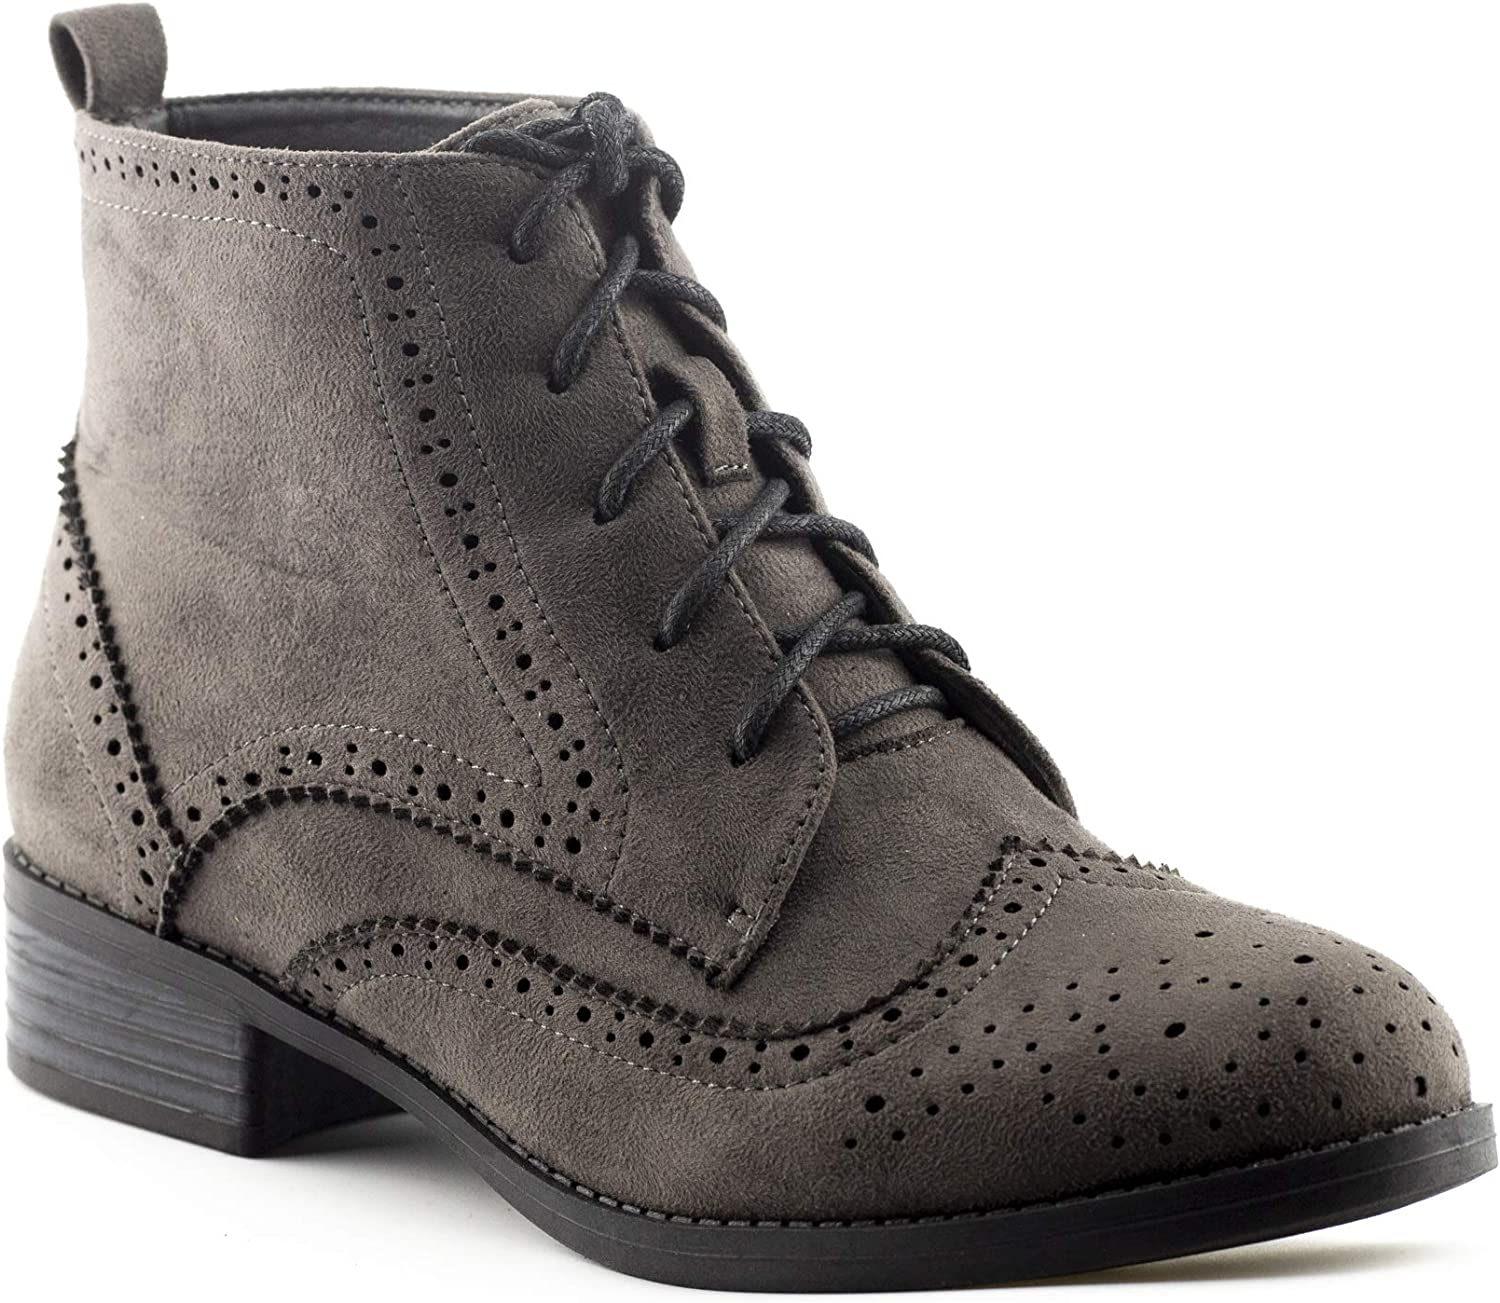 CALICO KIKI Women's Oxford Ankle Dress Boots - Low Stacked Heel - Perforated Lace up Wingtip Flats Booties